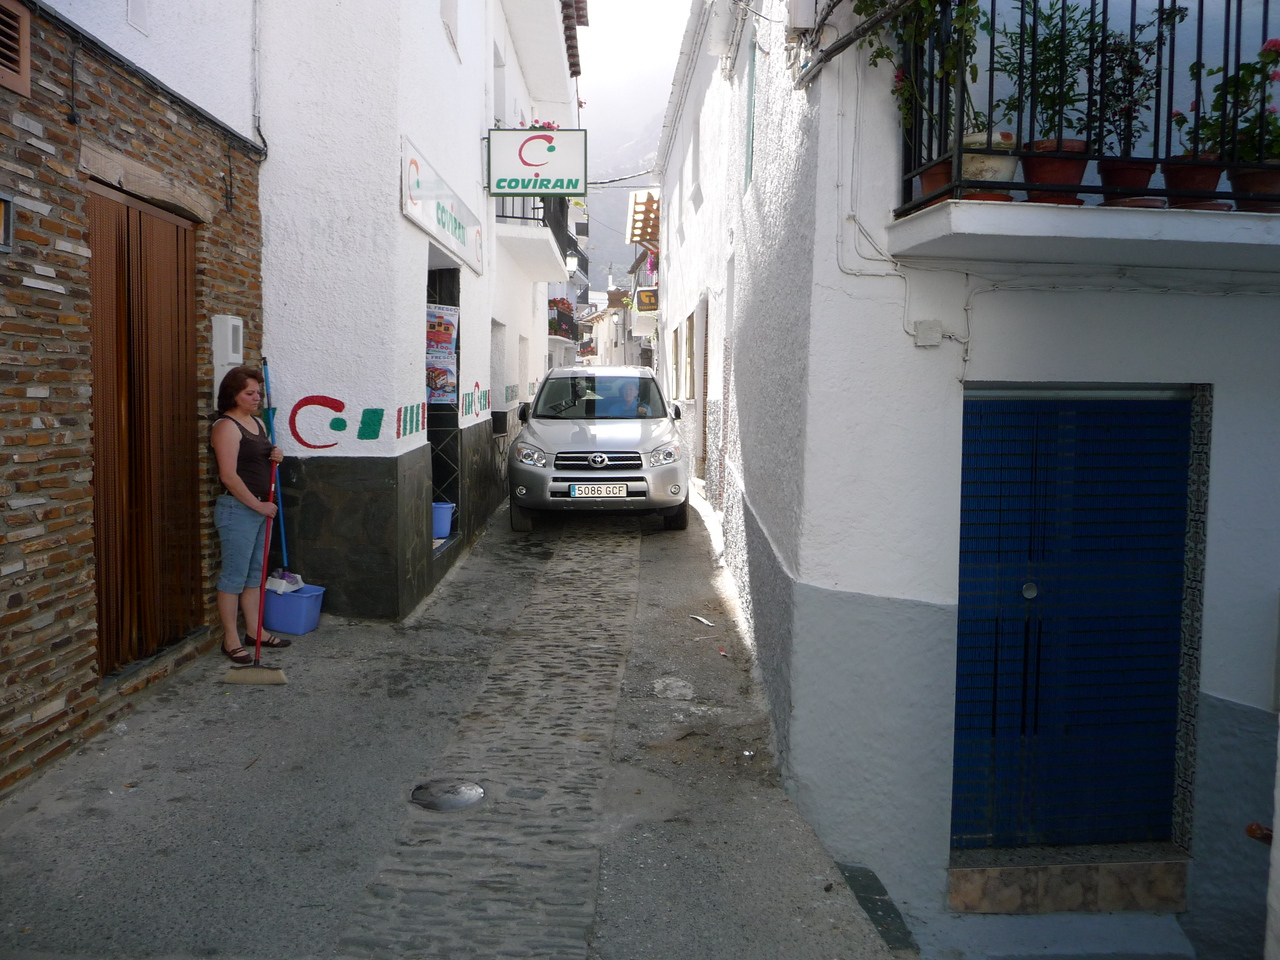 Driving through the narrow streets of Trevelez to reach our hotel